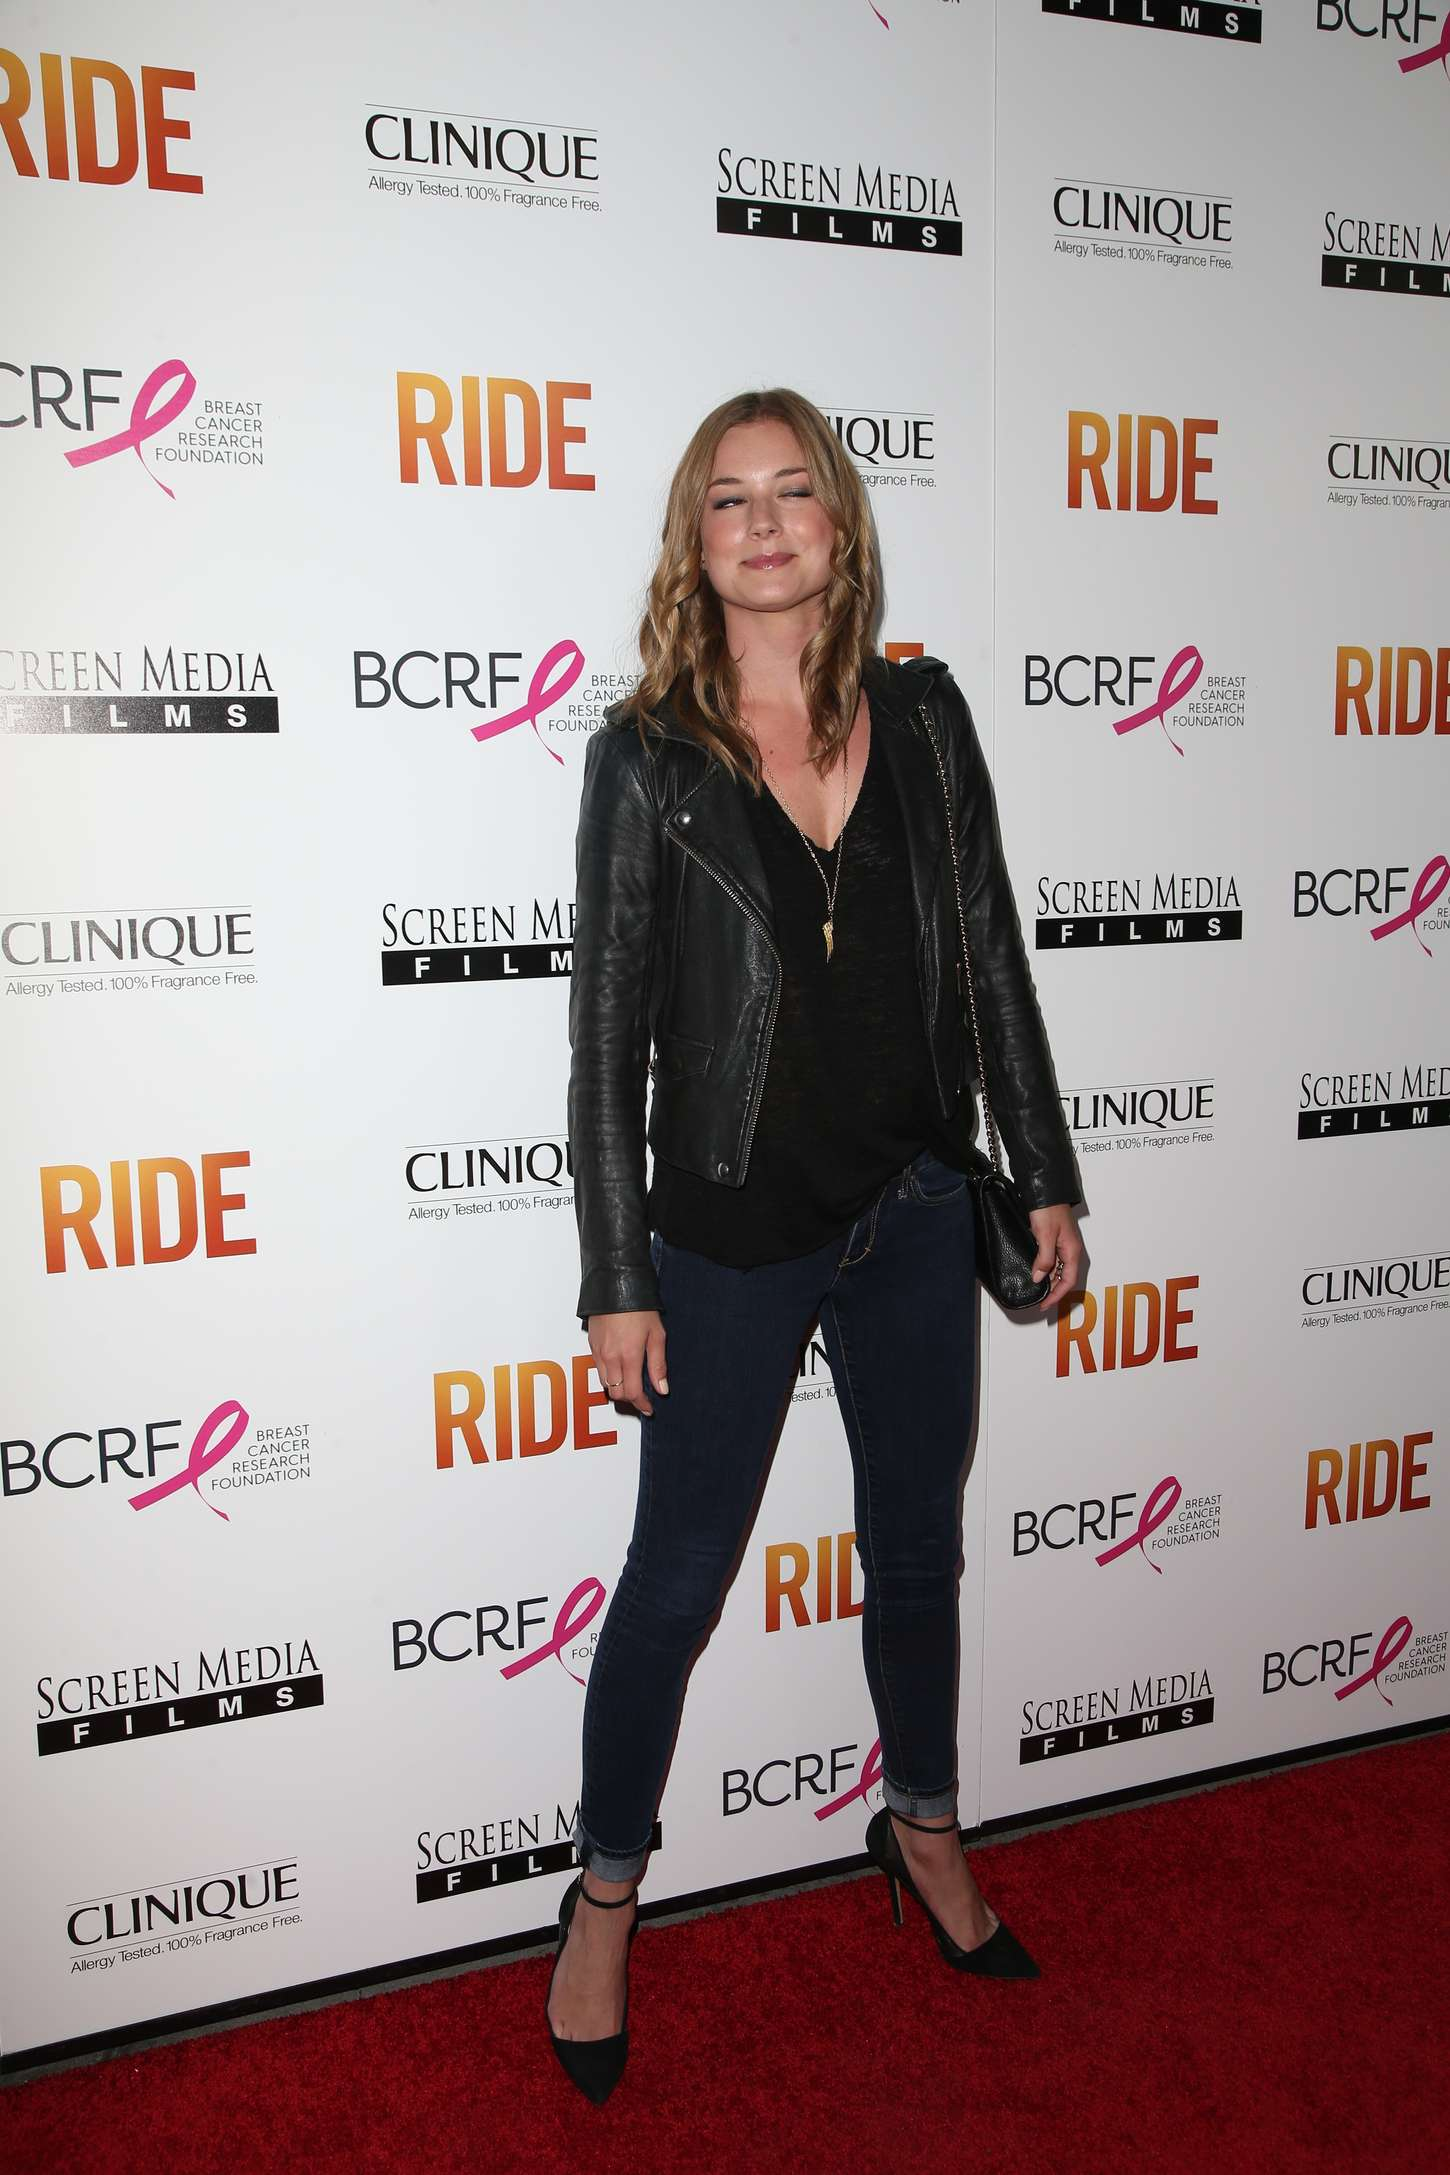 Emily VanCamp Ride Premiere in Hollywood